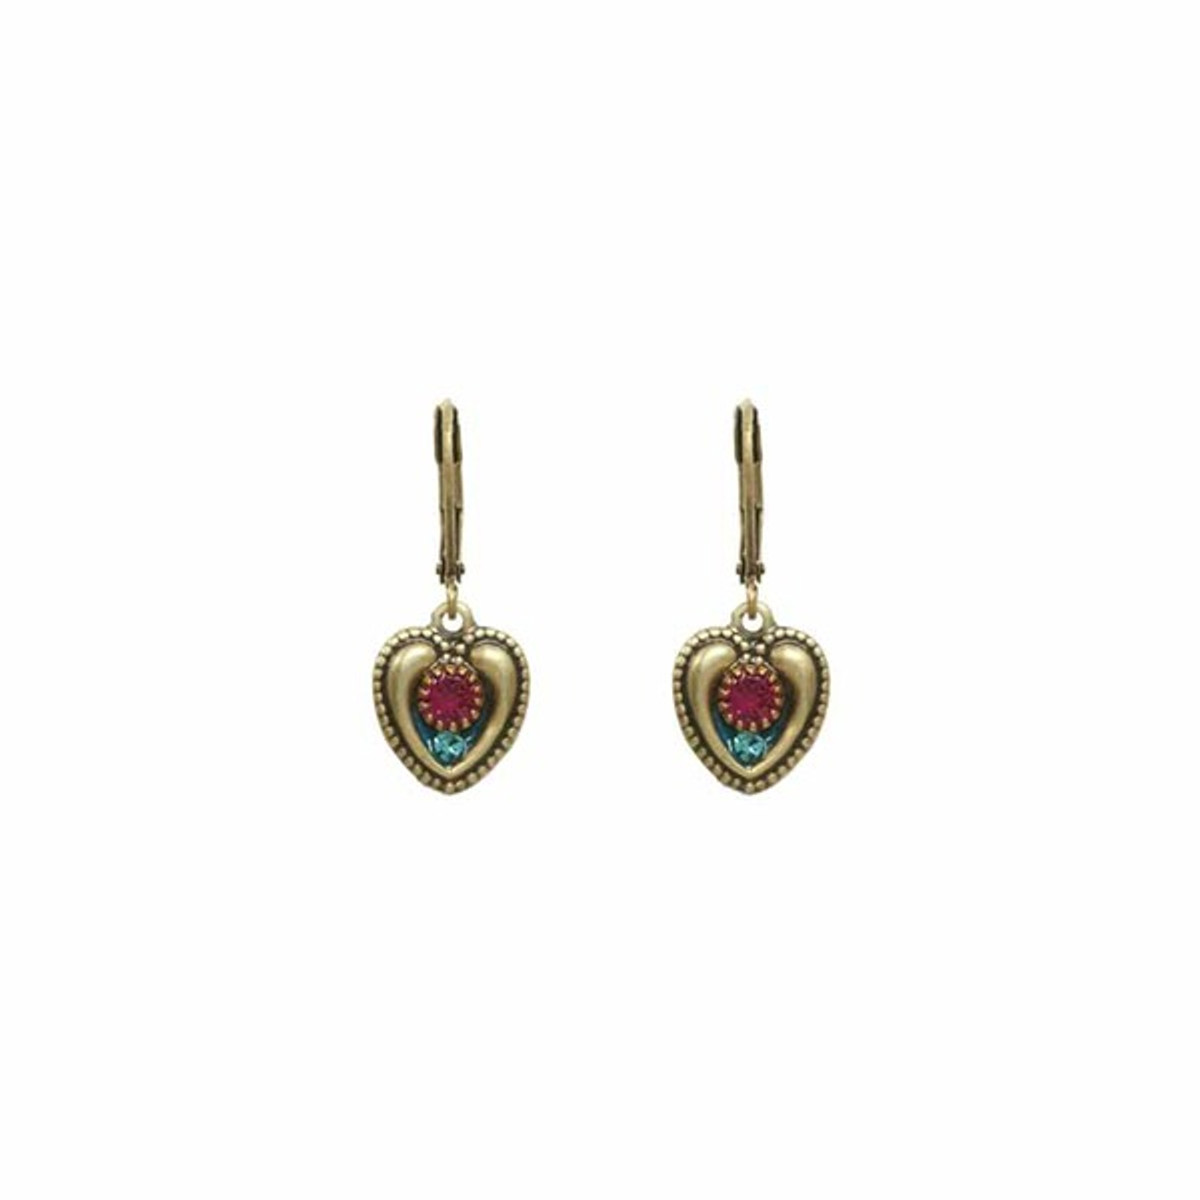 Michal Golan Heart Earrings